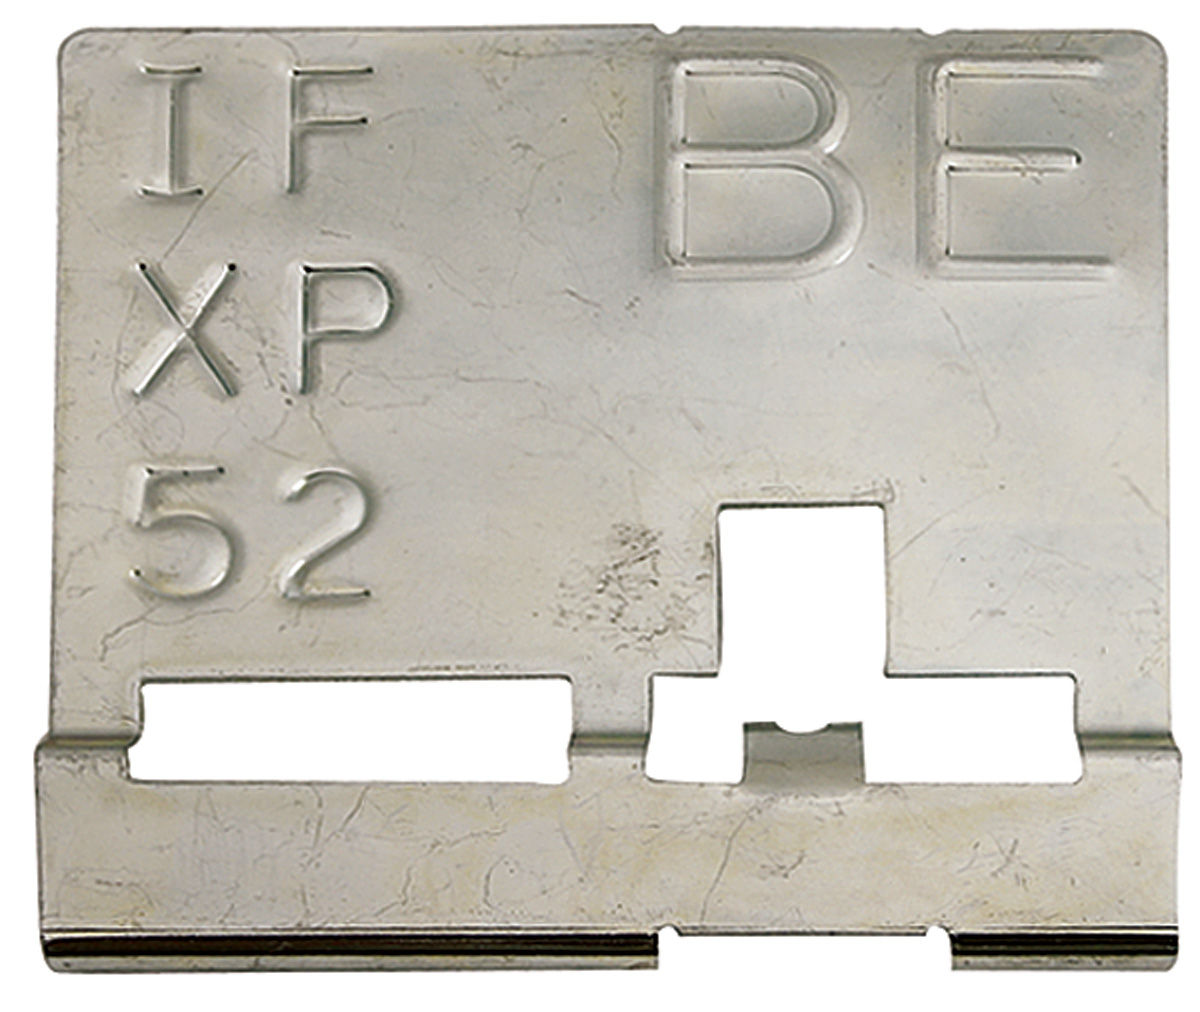 Radiator Tag, 1970 Chevrolet 396/350,